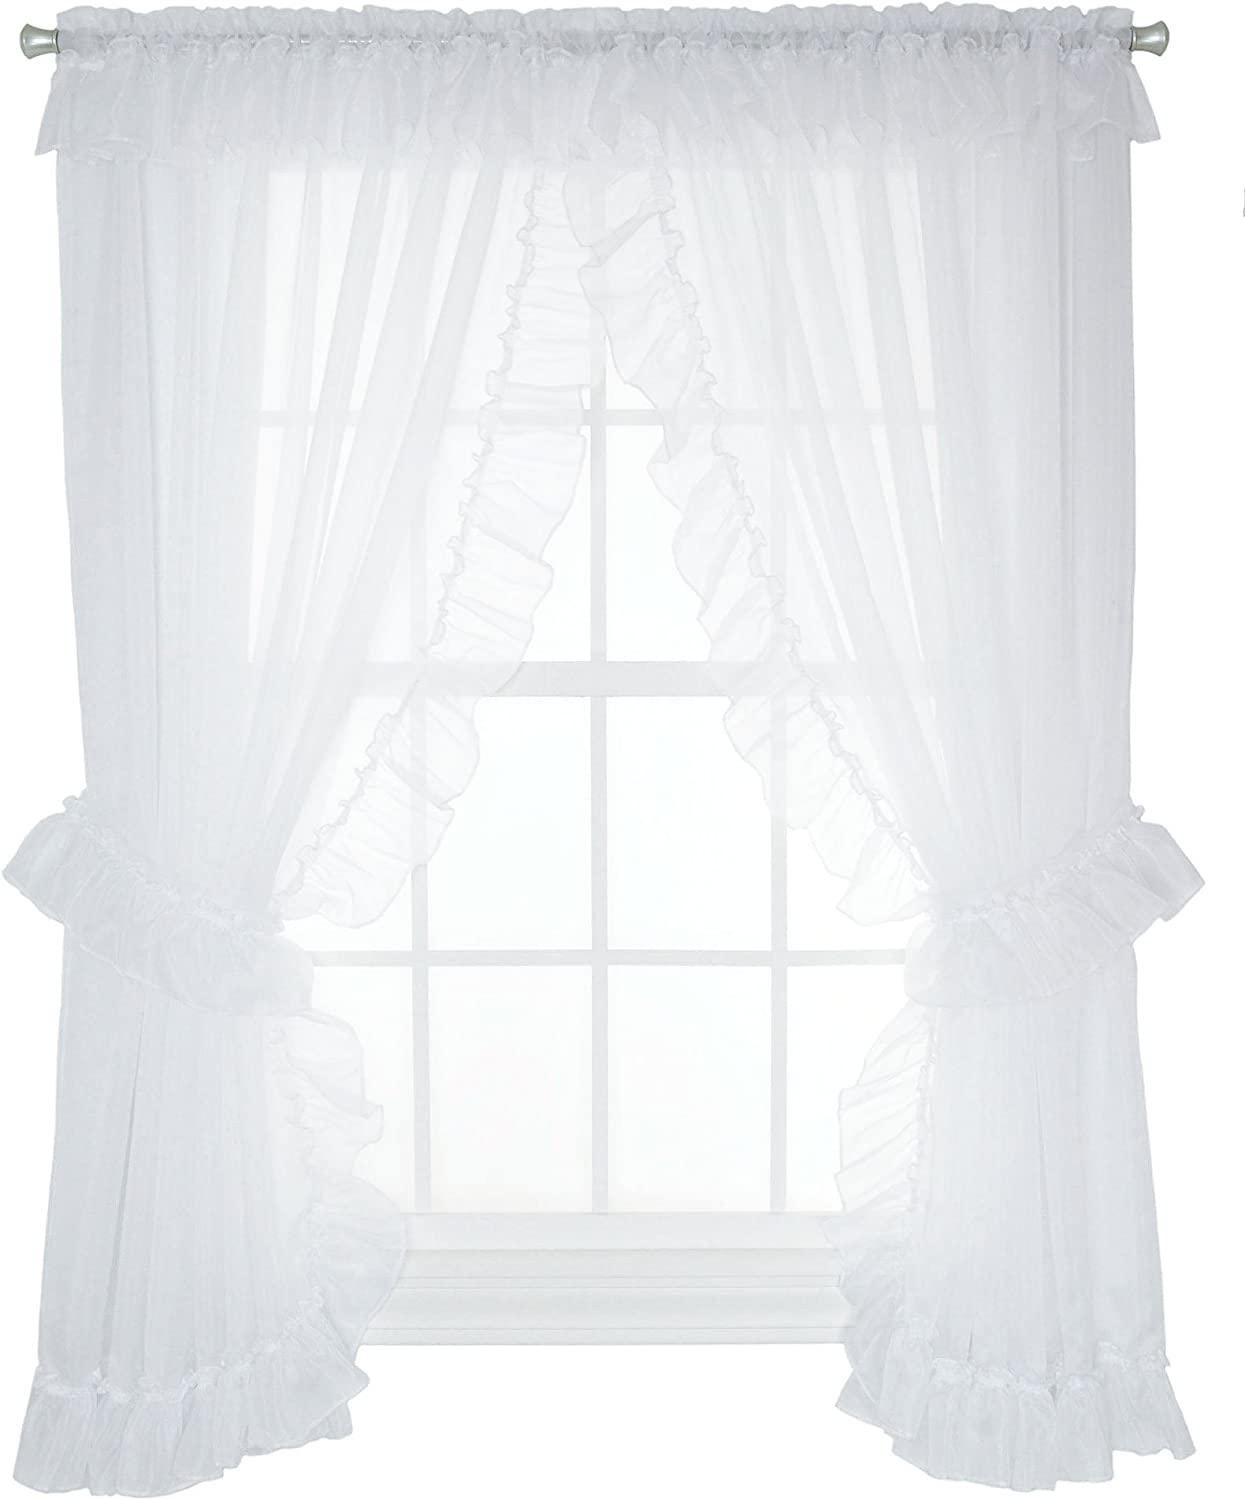 Ellis Curtain Jessica Sheer Ruffled Priscilla Pair Curtains with Ties, 100 by 72-Inch, White